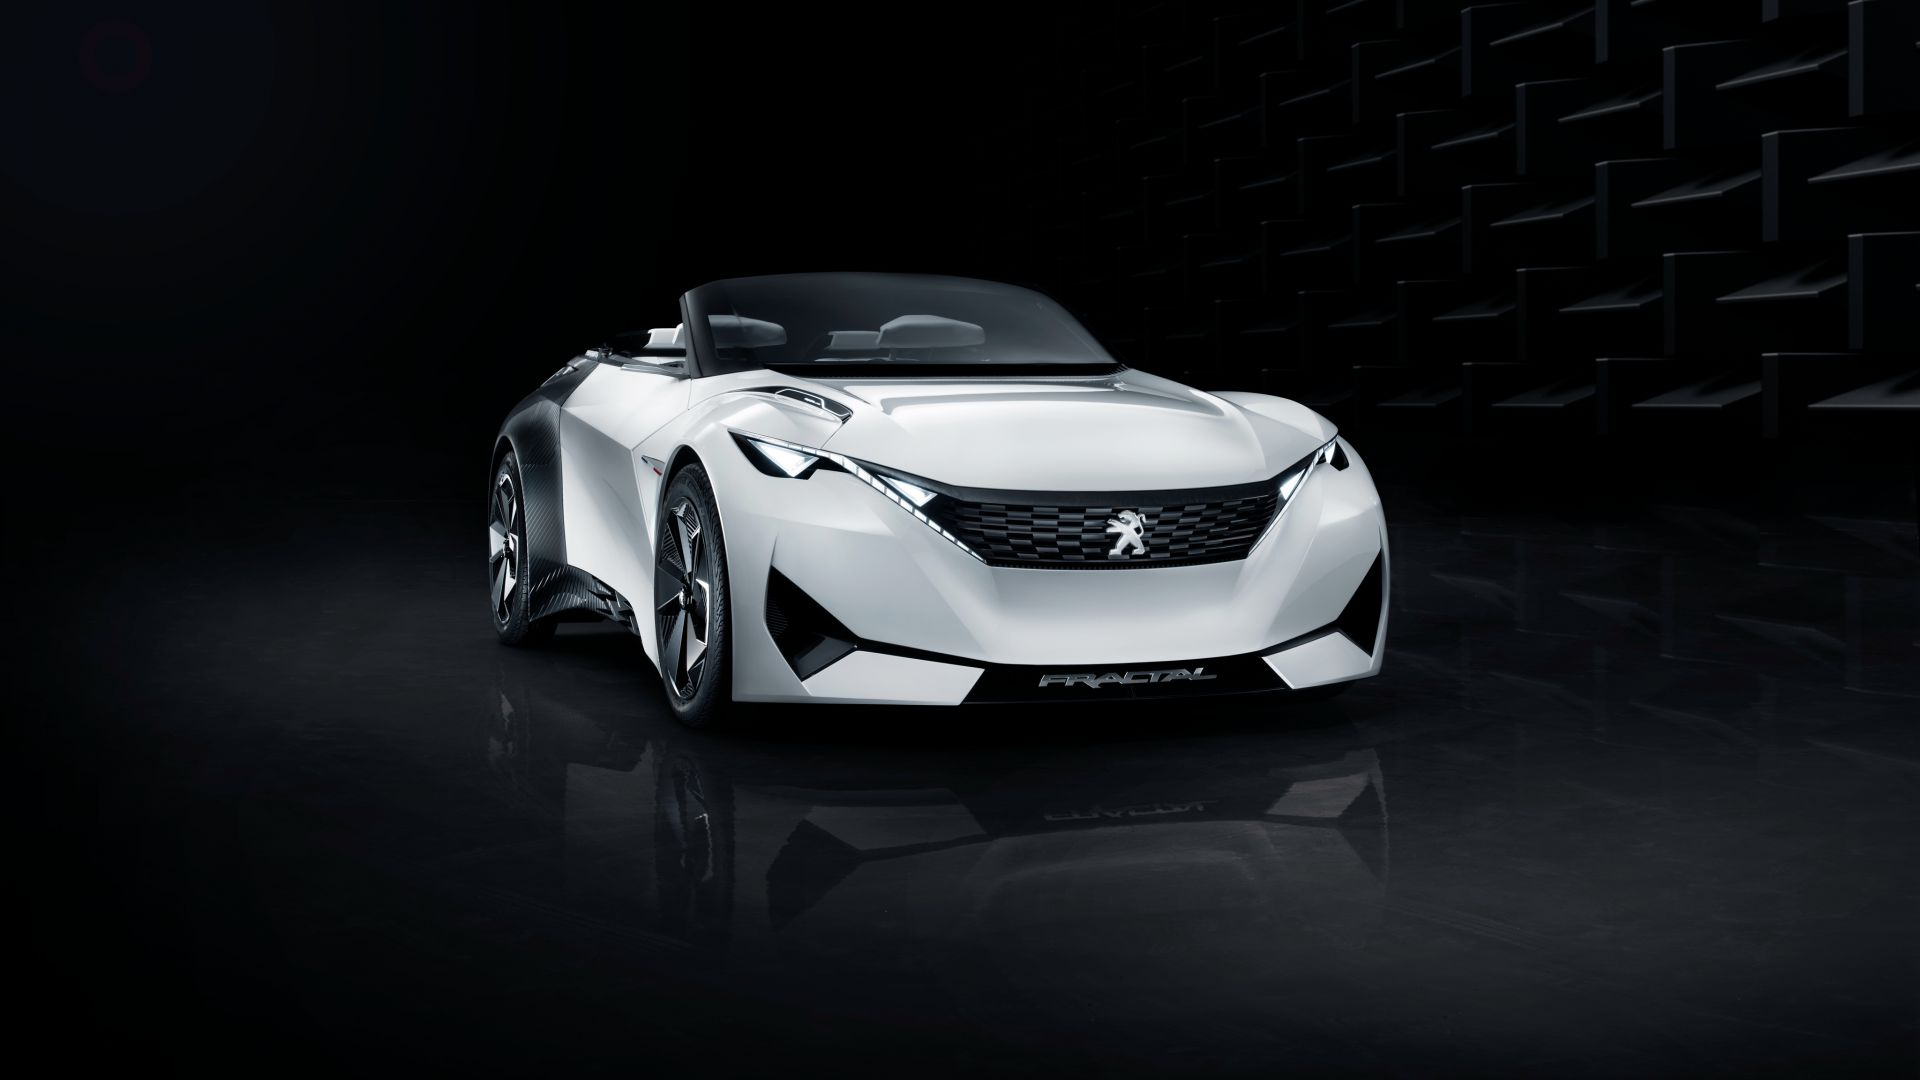 Peugeot Fractal, electric cars, white, black (horizontal)